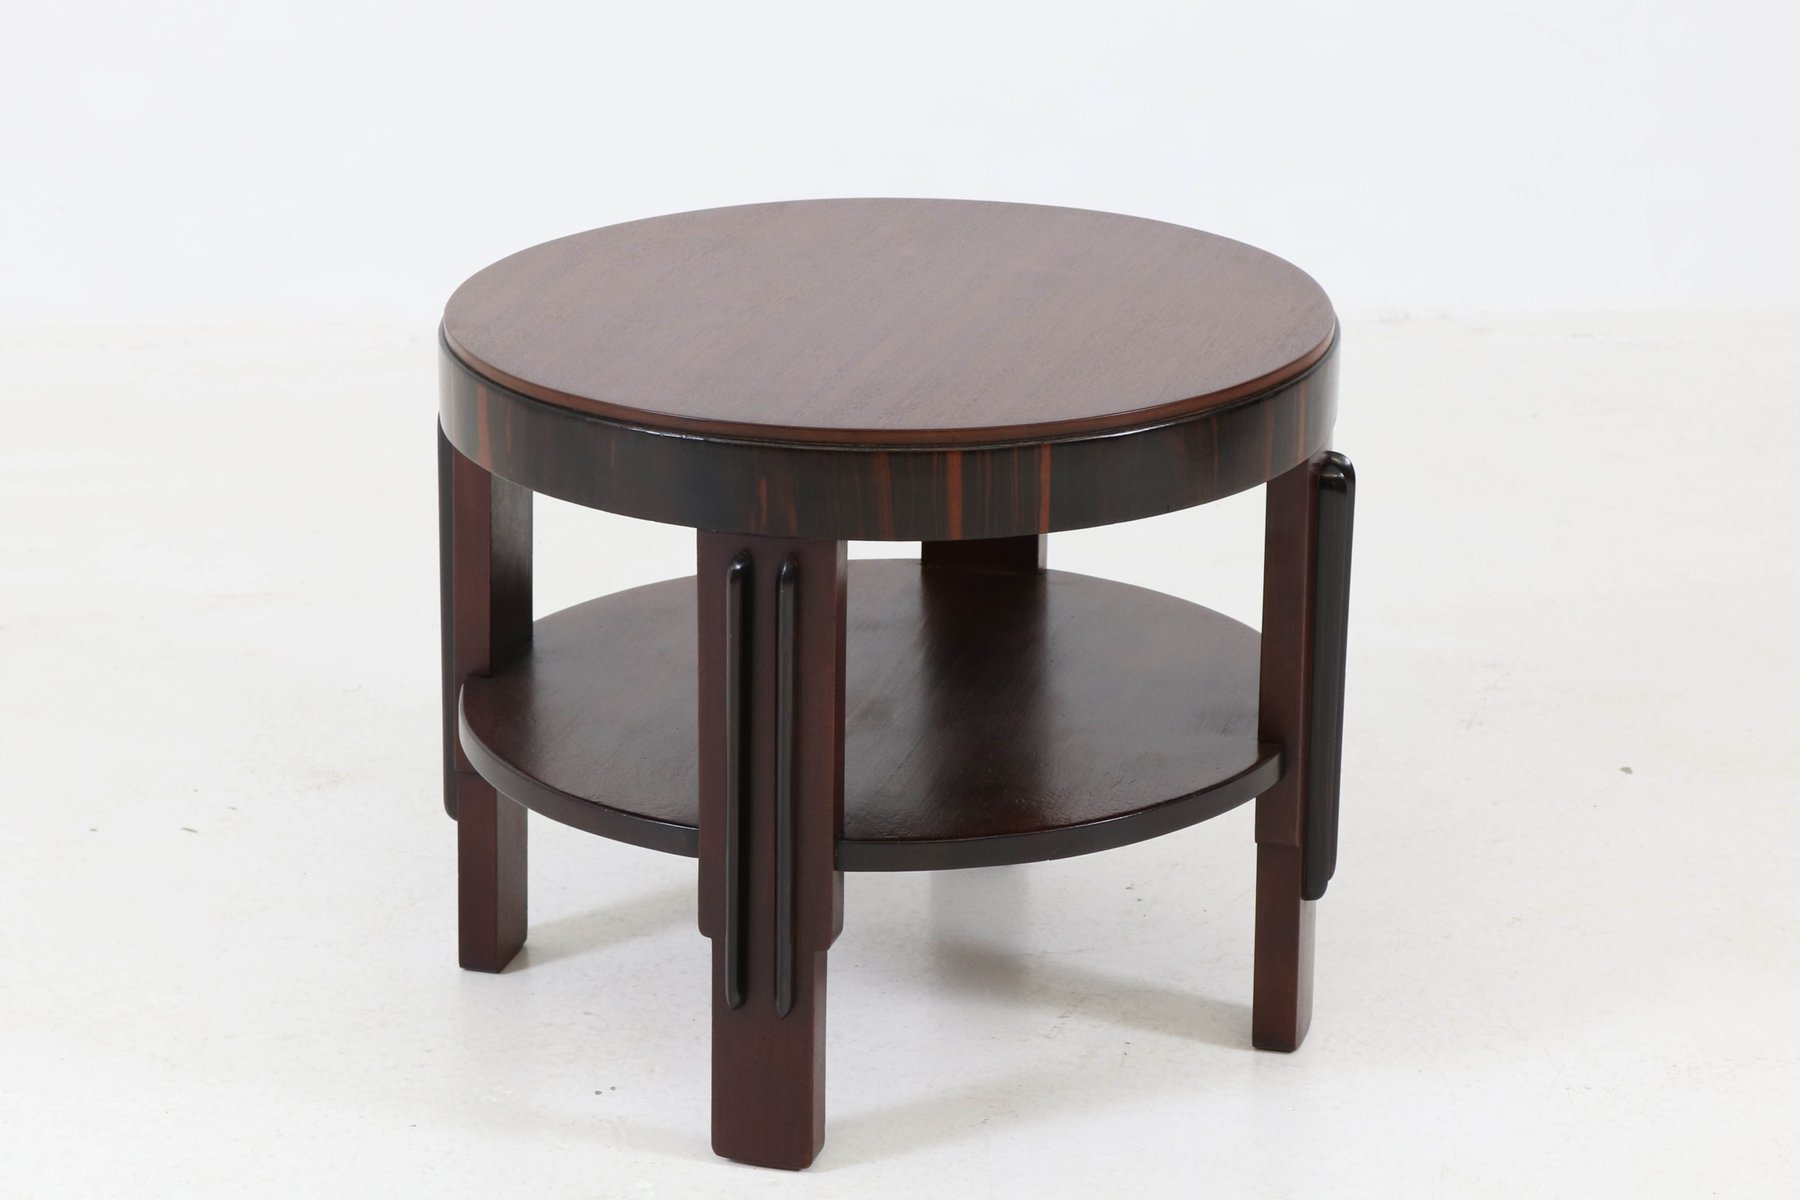 Mahogany Coffee Table by Fa Drilling Amsterdam 1920s for sale at